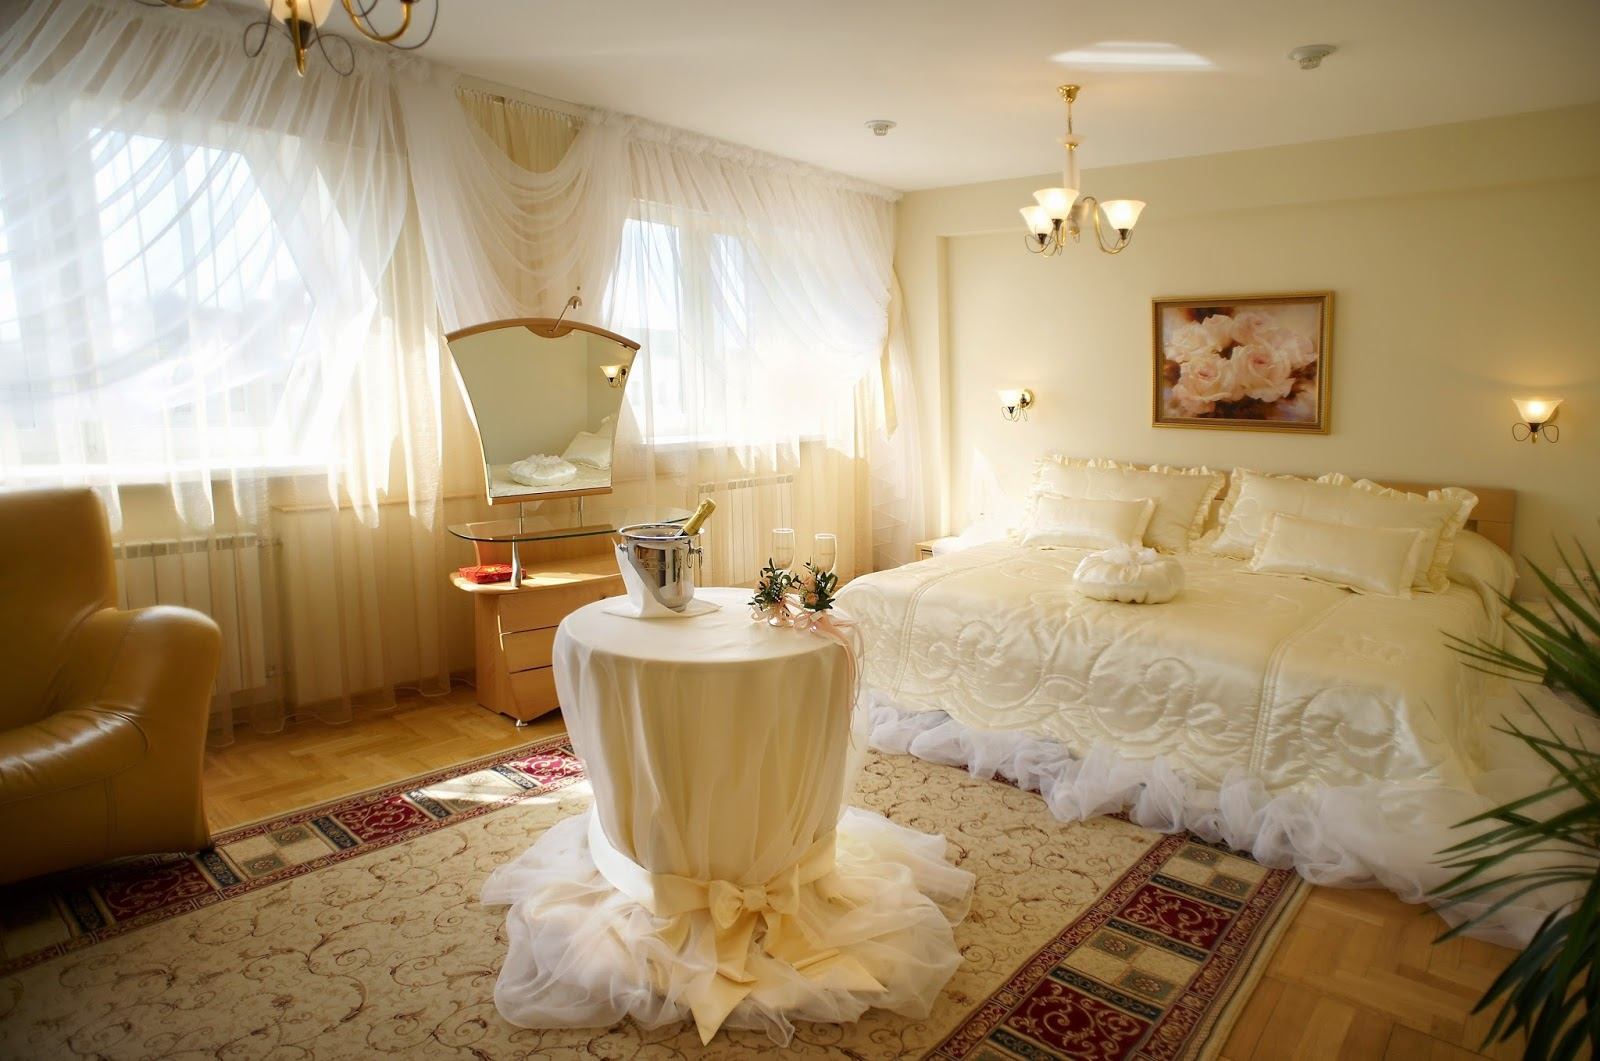 Romantic bedroom ideas for married couples for Romantic bedroom ideas for married couples